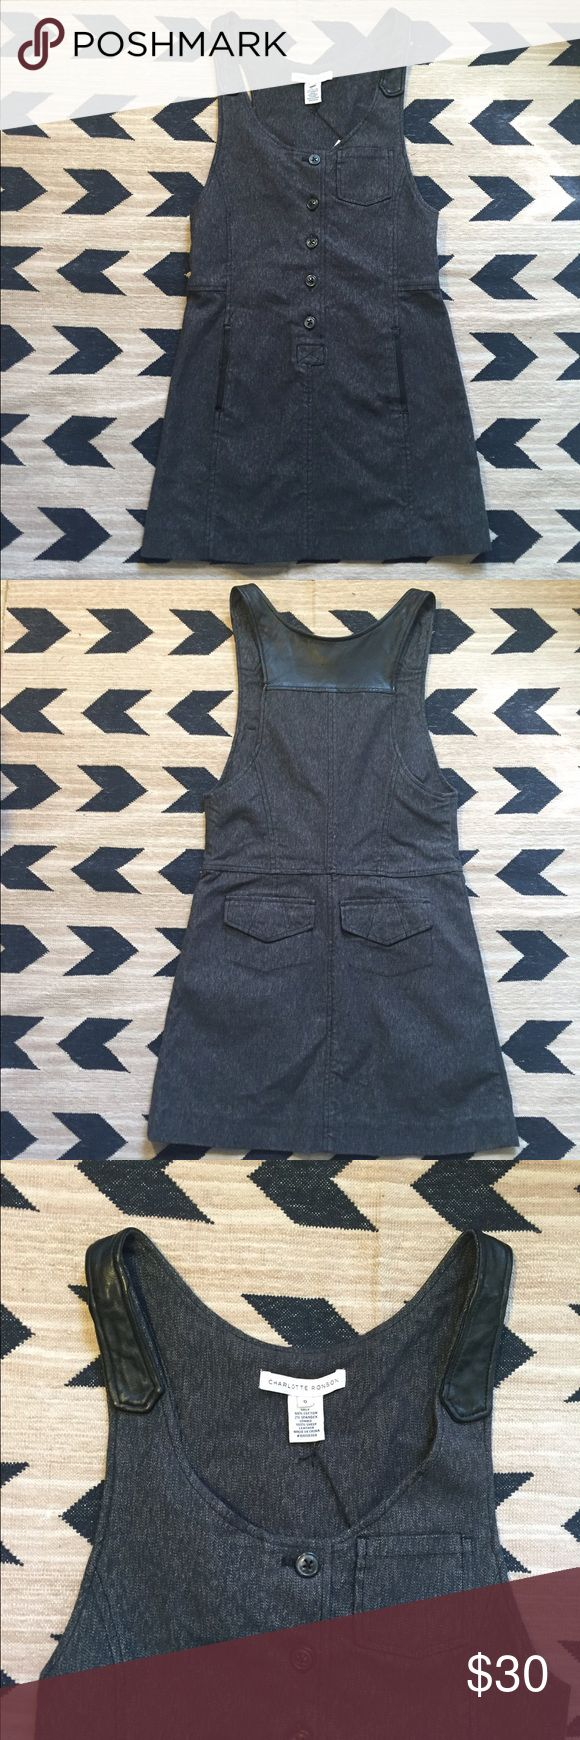 Charlotte Ronson grey overall Jean dress. Charlotte Ronson grey overall Jean dress.  Undo buttons to step into the dress.  Strap area is made of sheep leather.  Rest of the dress is Jean material (98% cotton and 2% spandex).  Size 0.  Purchased at sample sale. Charlotte Ronson Dresses Mini